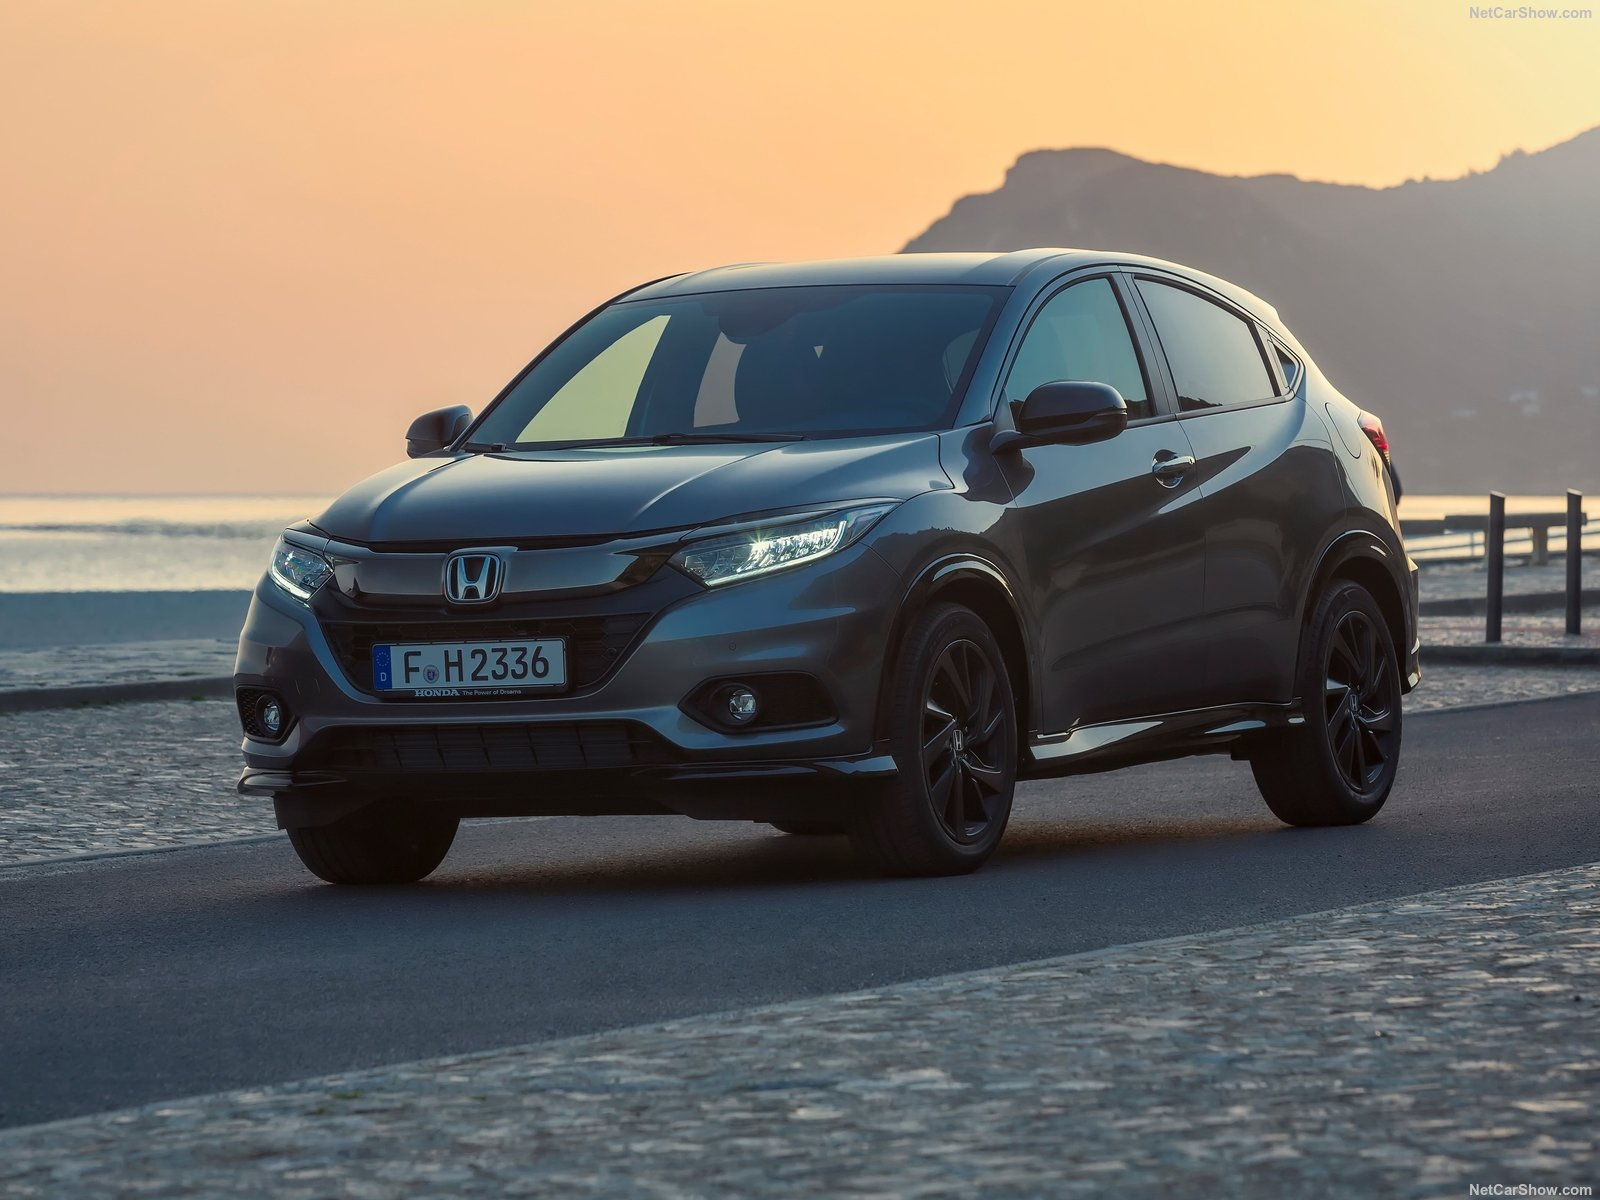 Honda HR-V EU-Version photo 194327